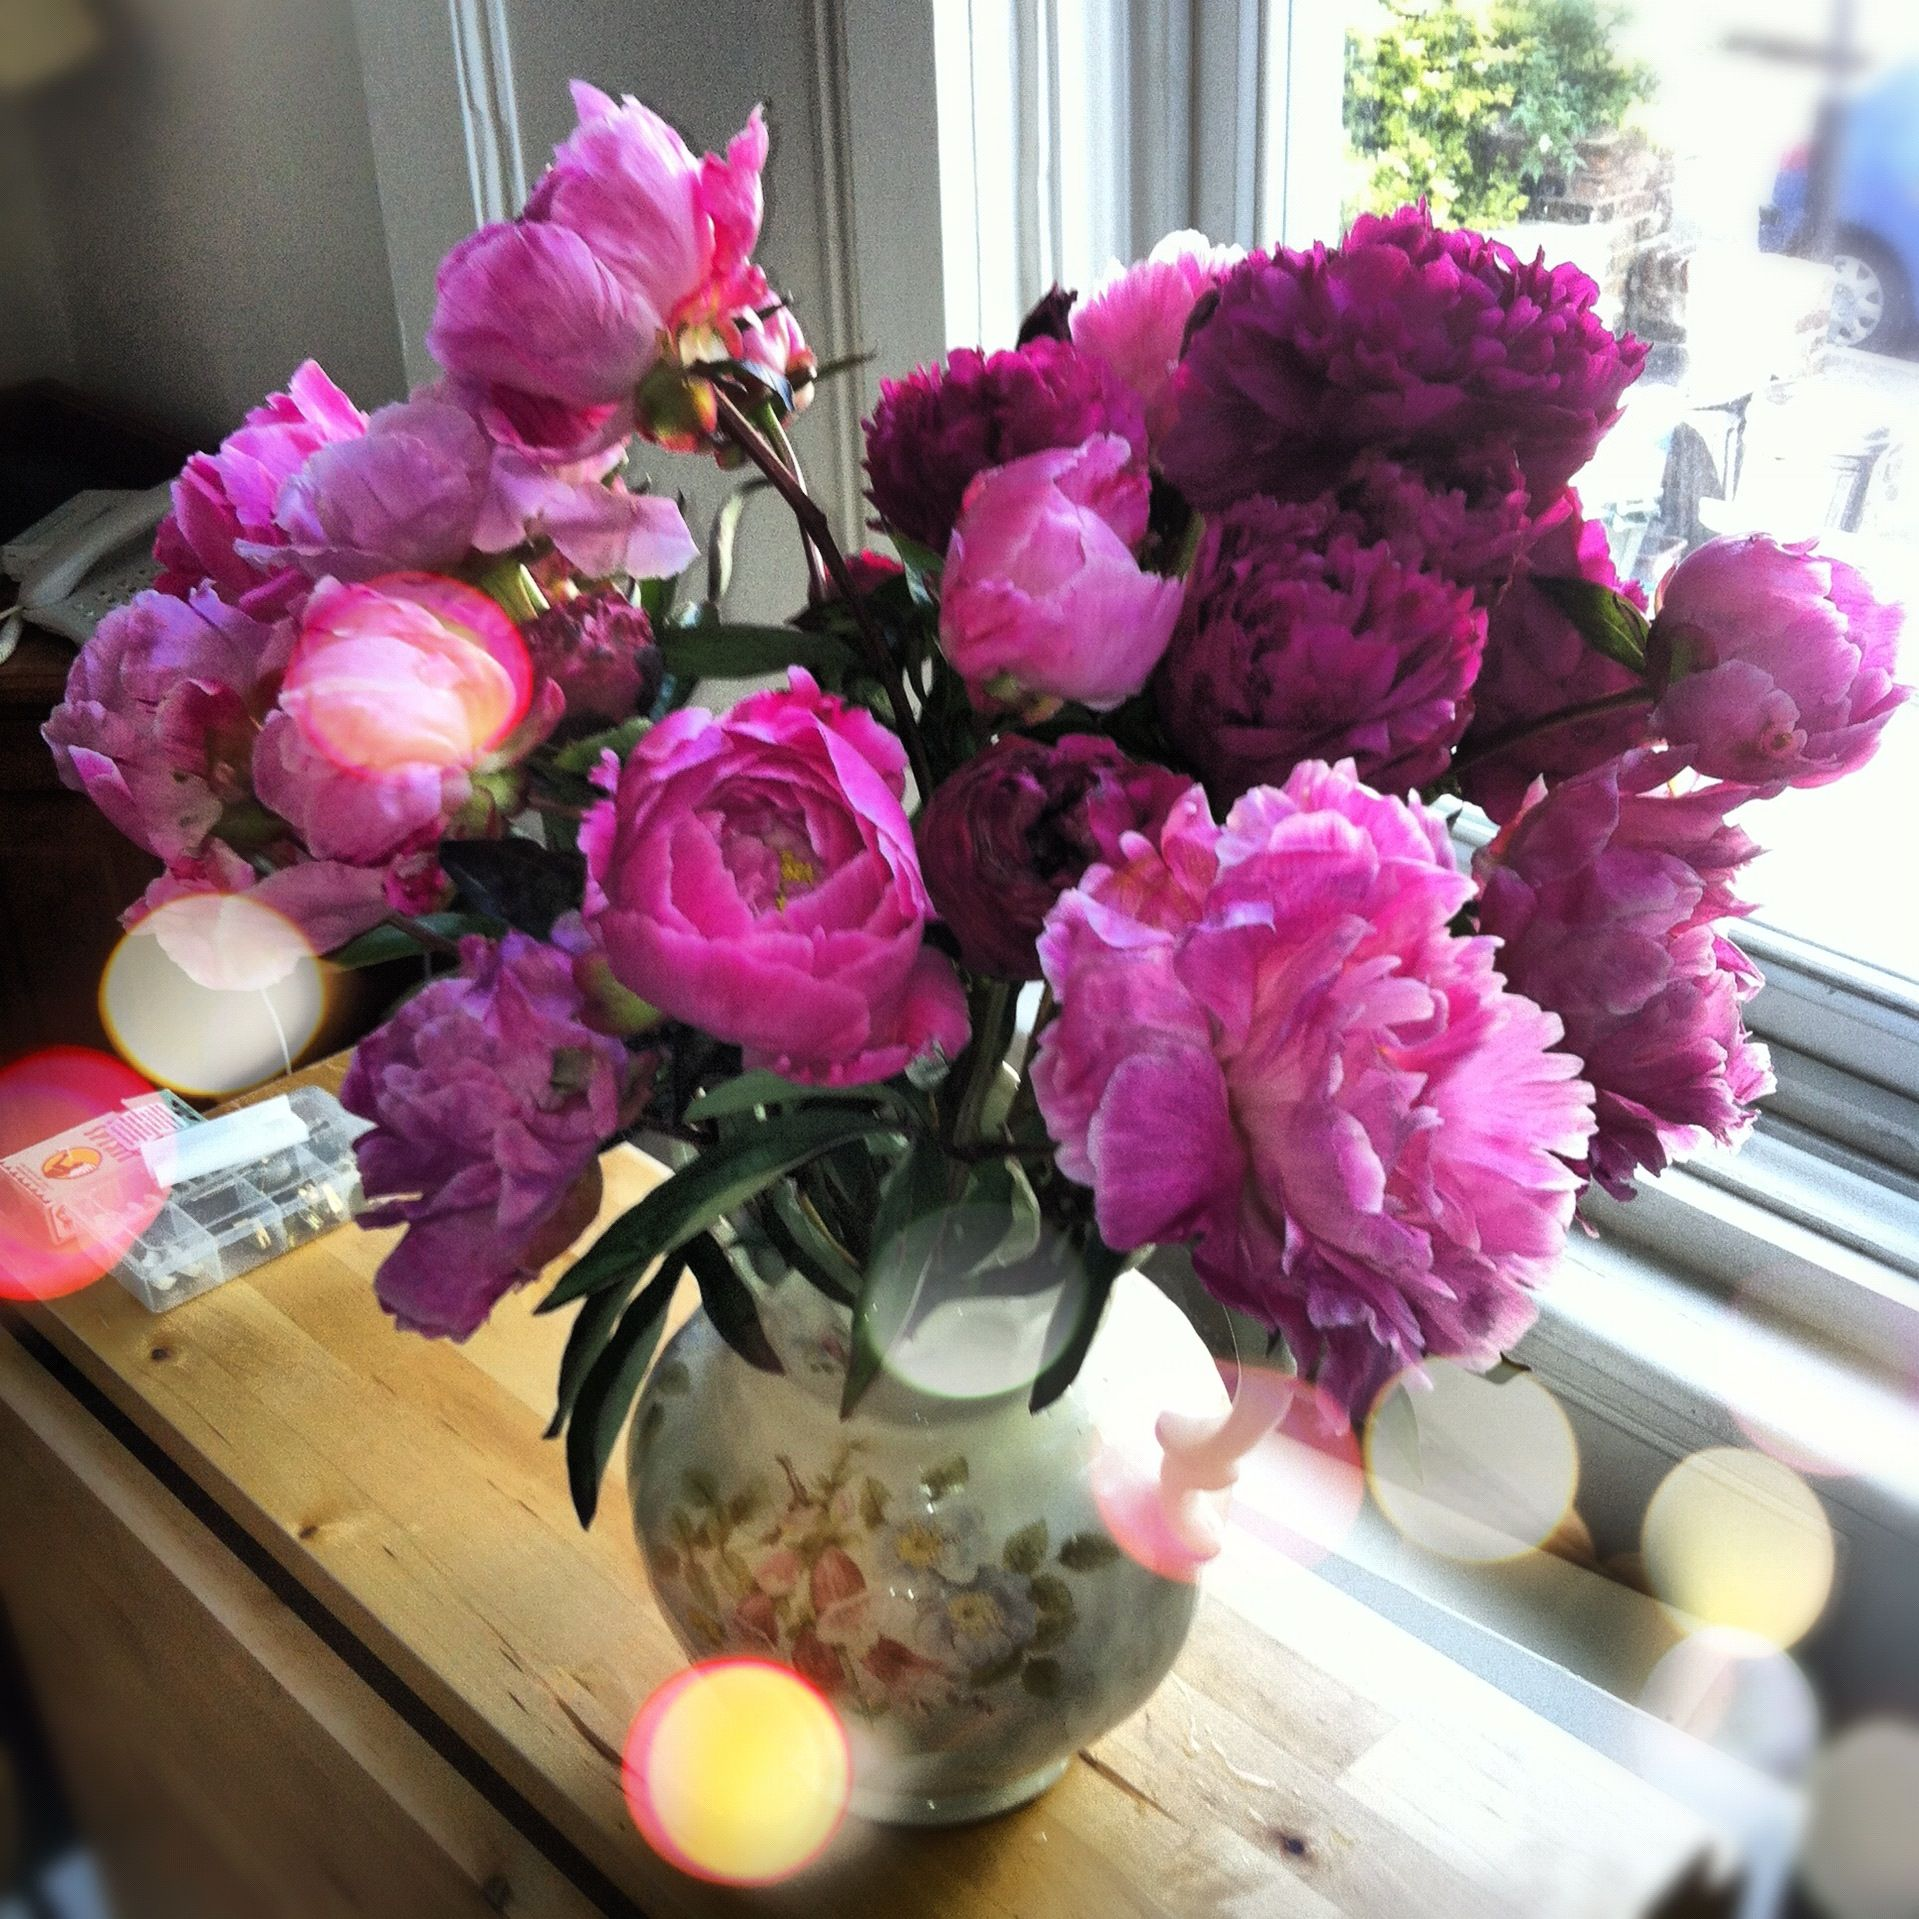 Peonies Season peonies season - google search | flowers | pinterest | peonies